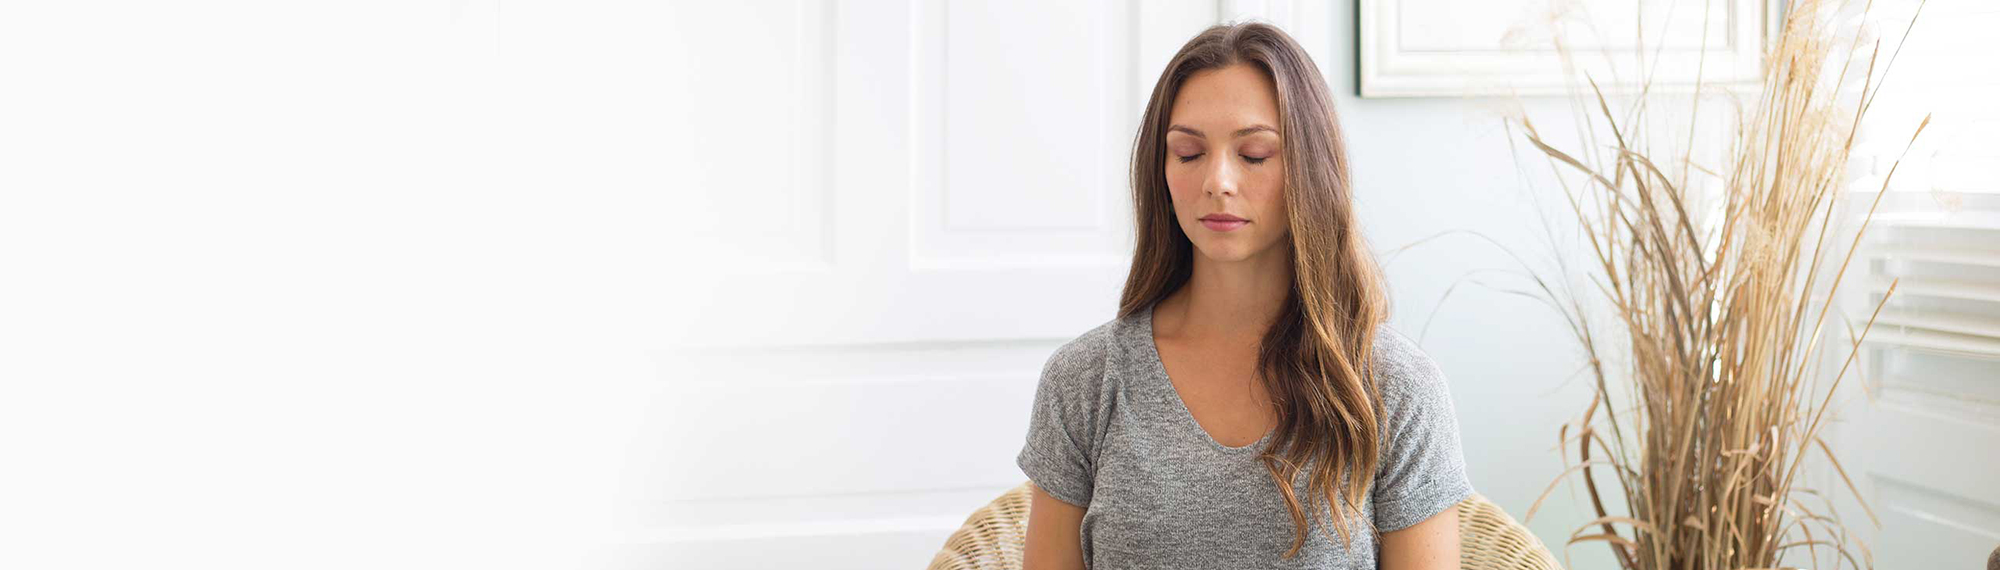 The technique for inner peace and wellness